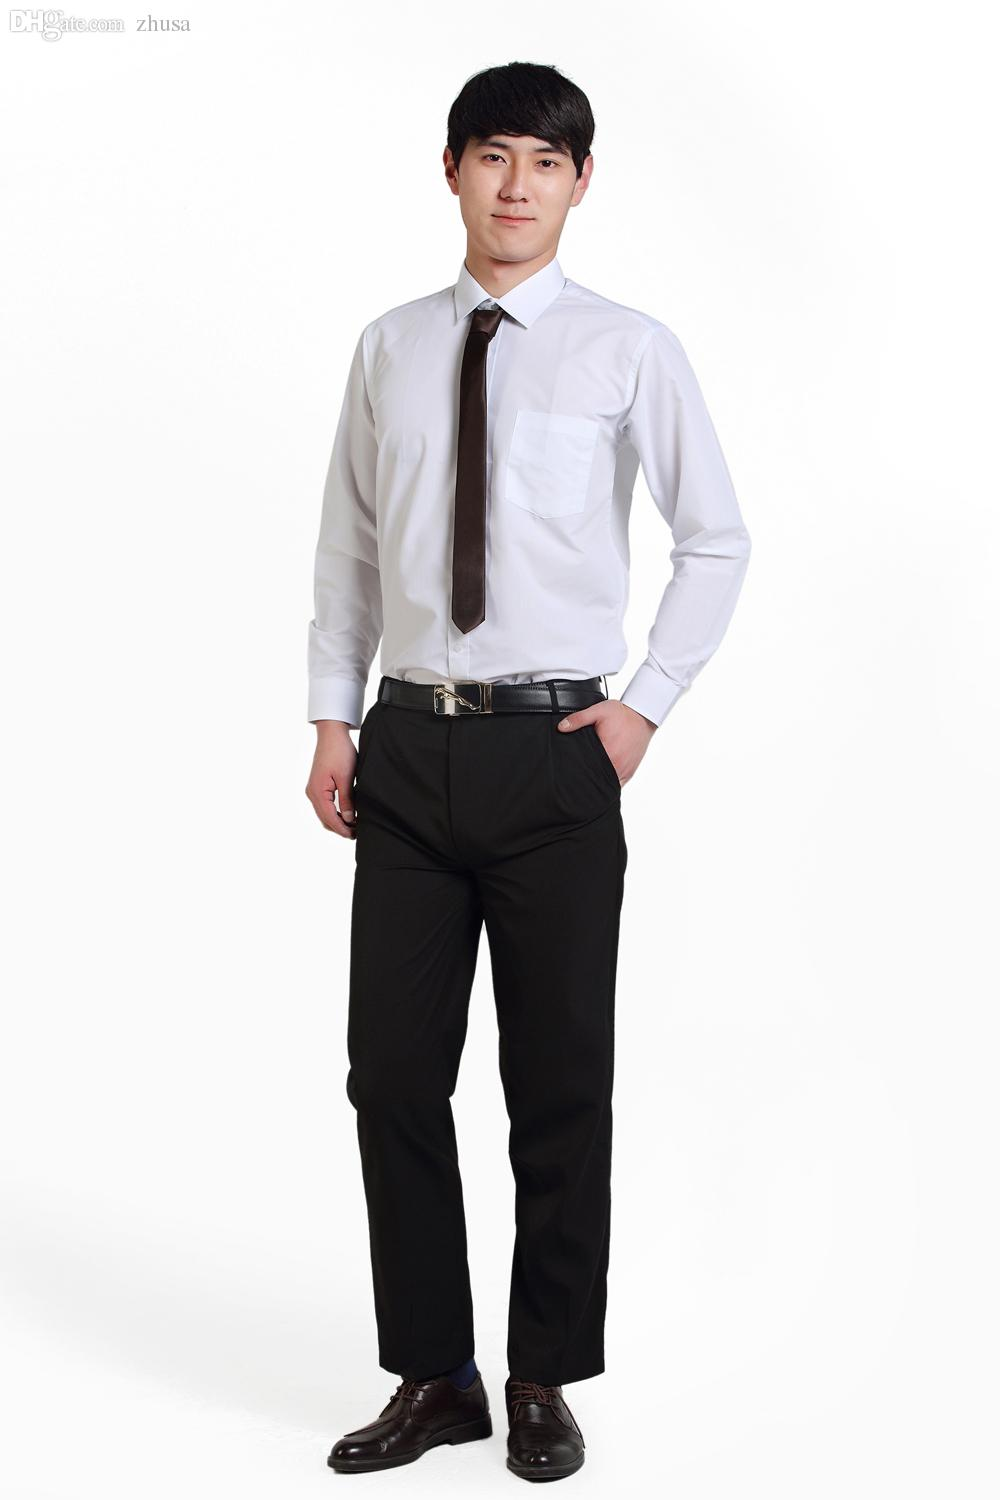 2018 wholesale 2016 oem office suit business suit design for men white shirt and black pant from zhusa 4265 dhgatecom